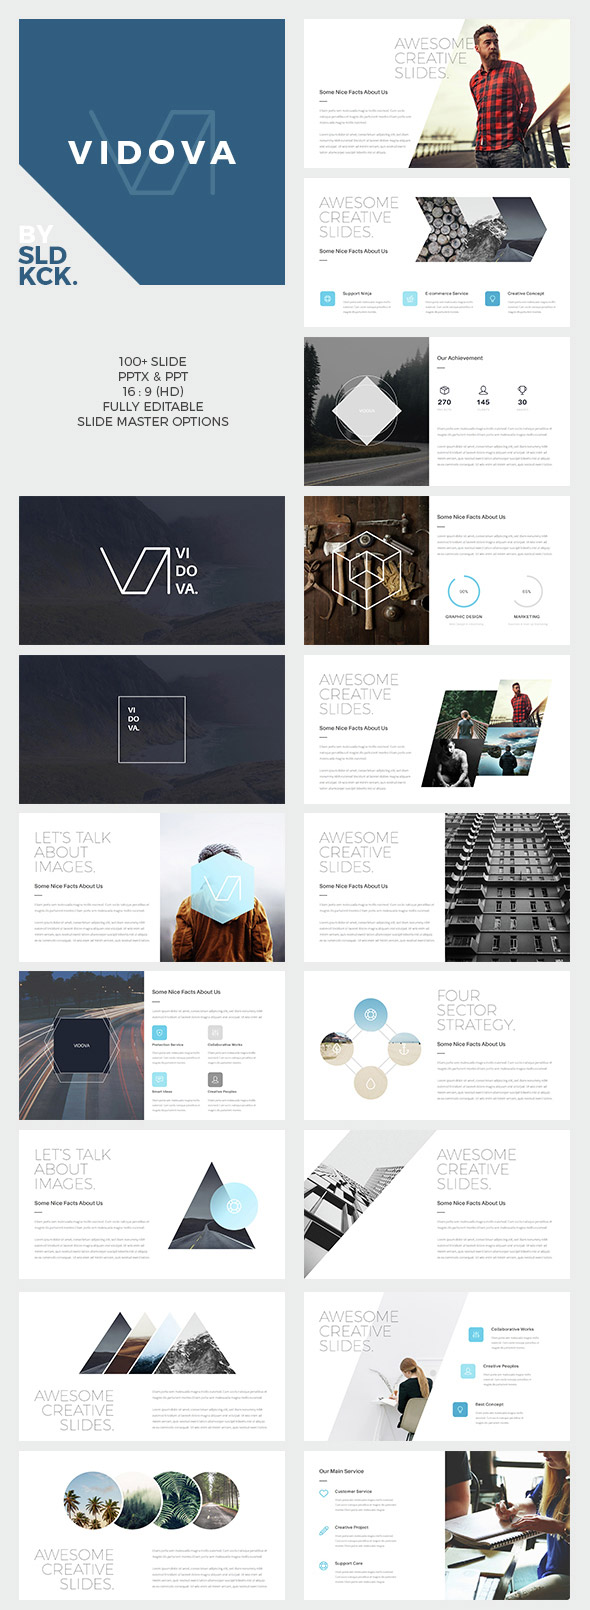 20 ppt templates: for simple, modern powerpoint presentations